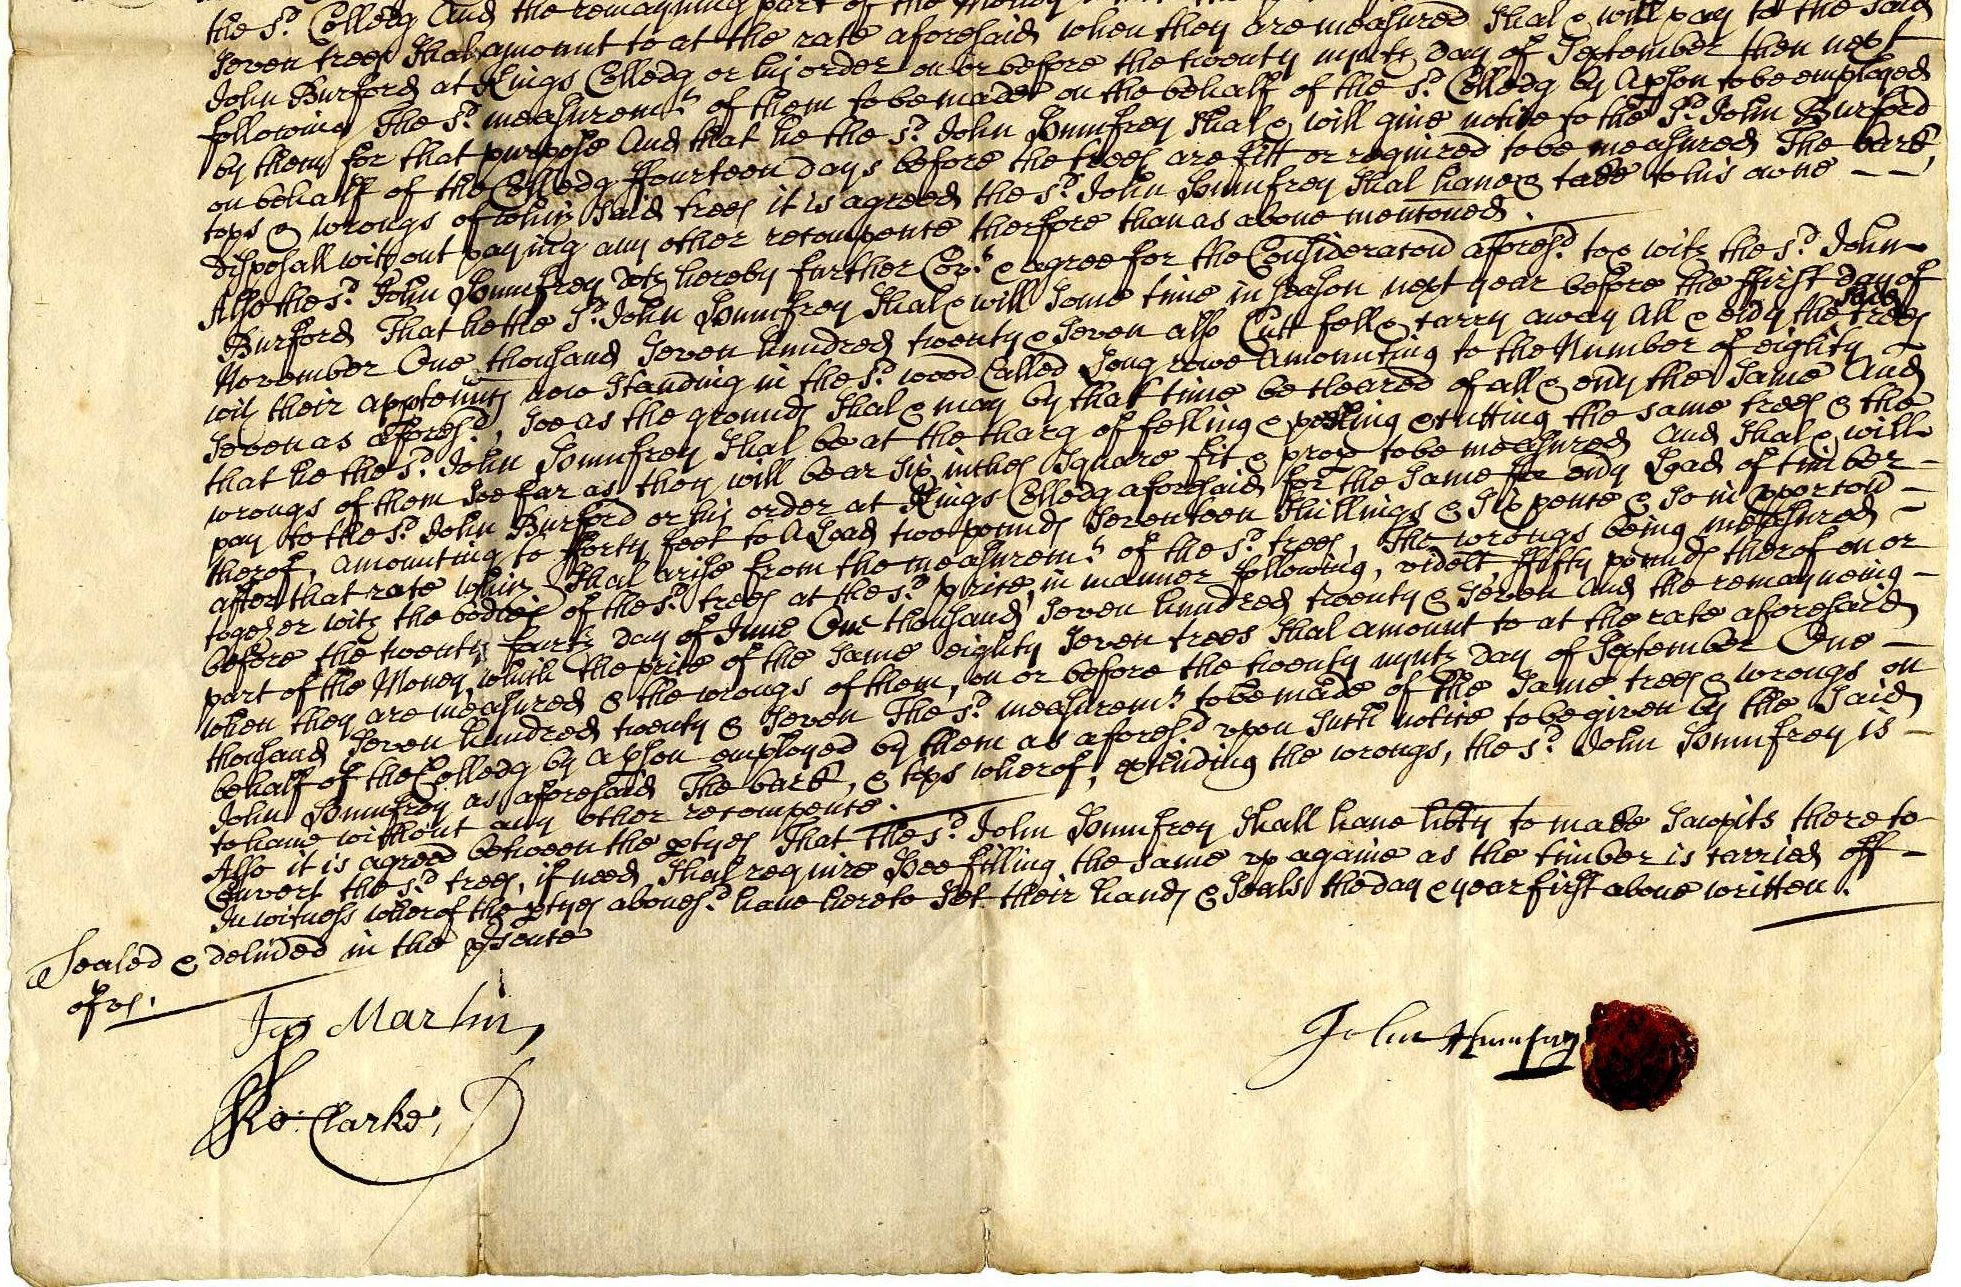 Lower half of an agreement for the sale of 234 oak trees to John Humphry, 1726. [TOM/54]